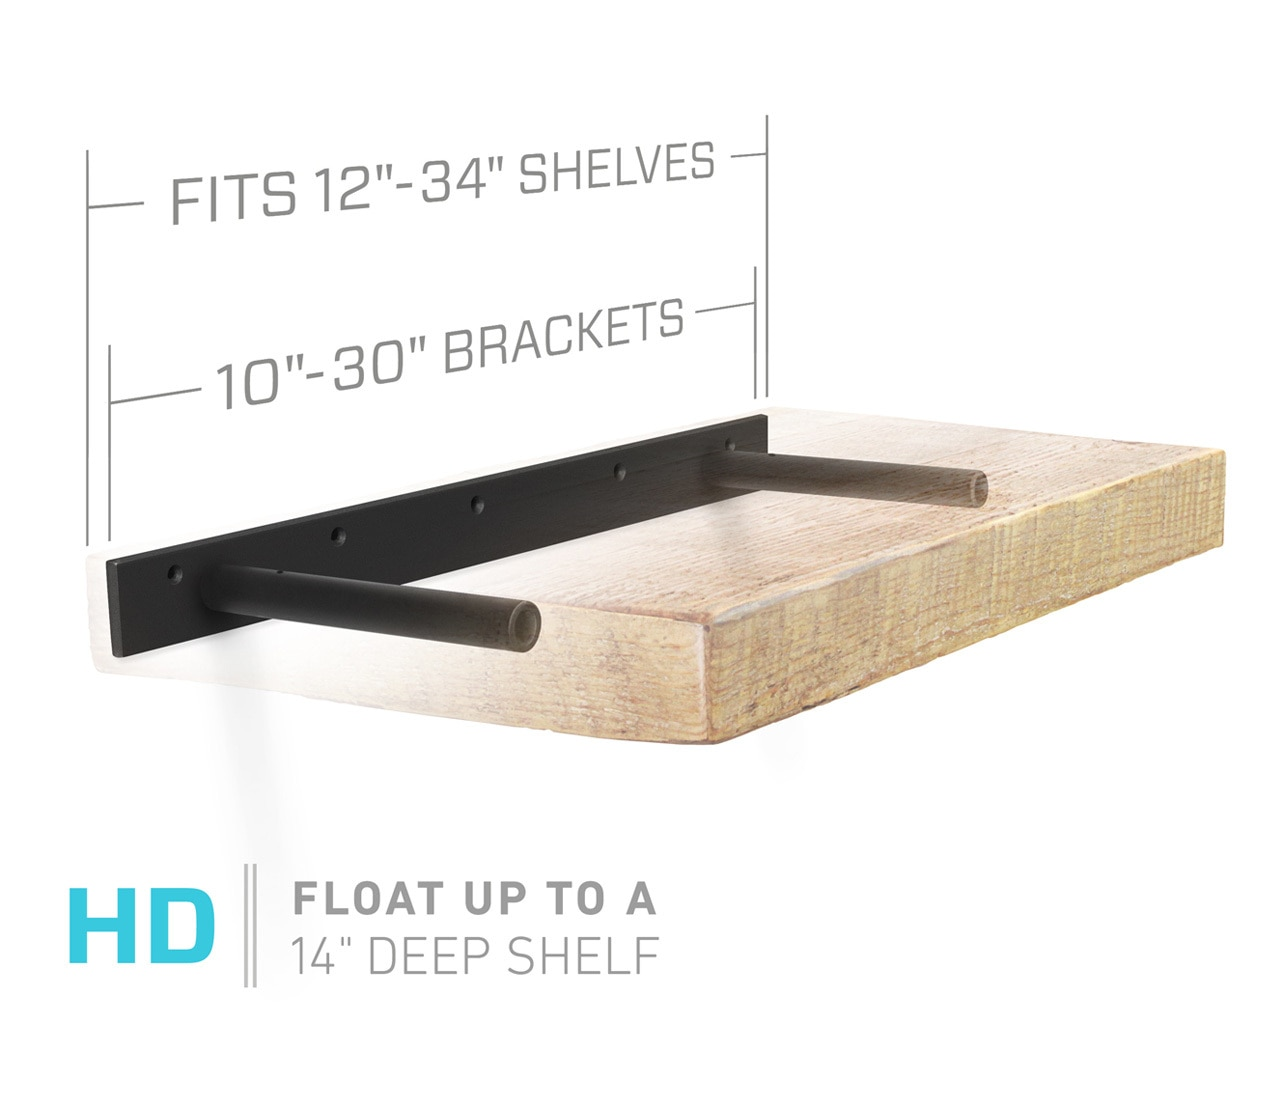 floating shelf bracket fits inch shelves deep wall our heavy duty two bar brackets float stand concealment plans installing plaster walls for children room duraline storage system